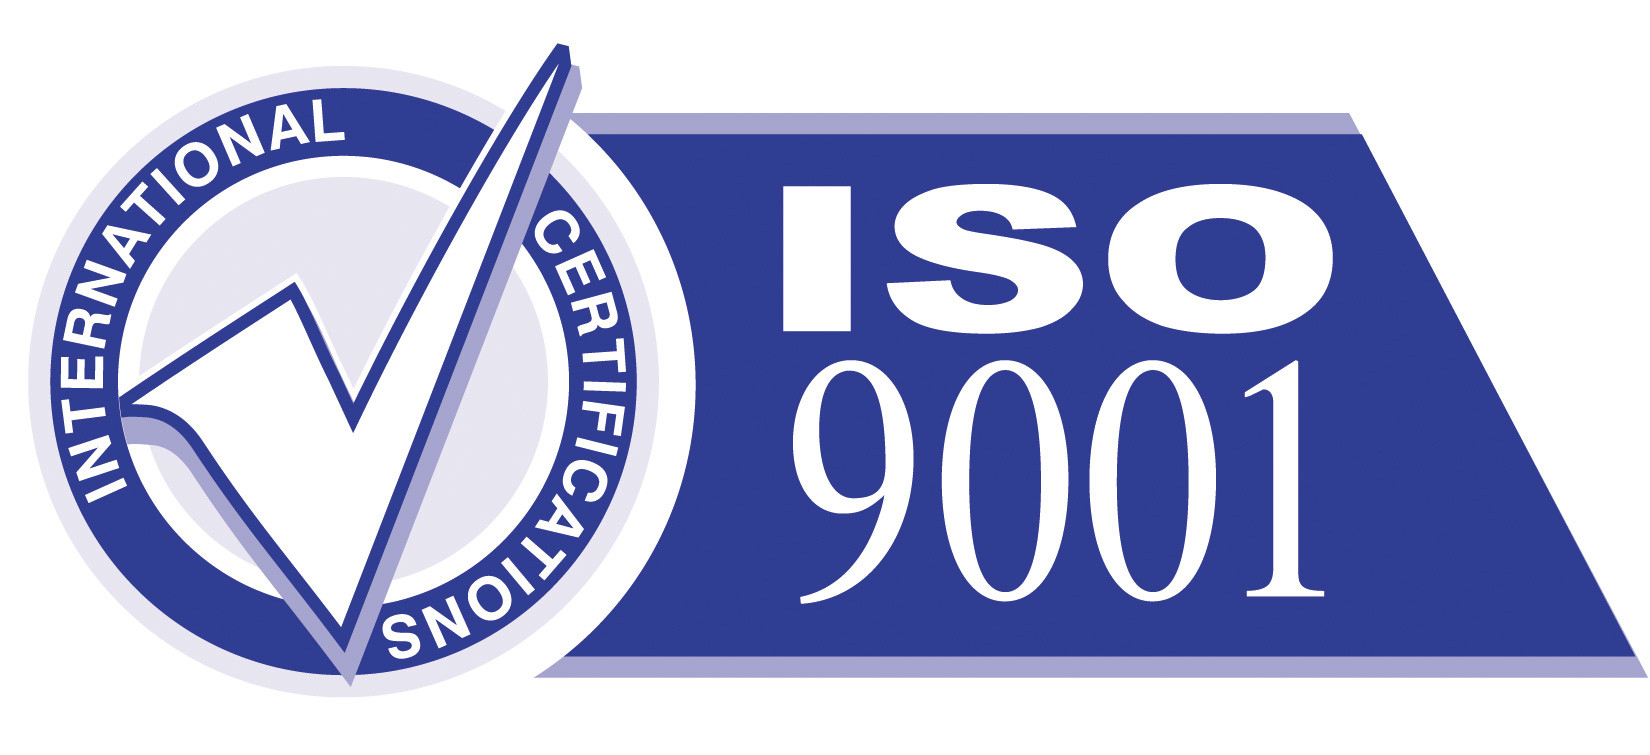 Manufactured by ISO 9001 standard!